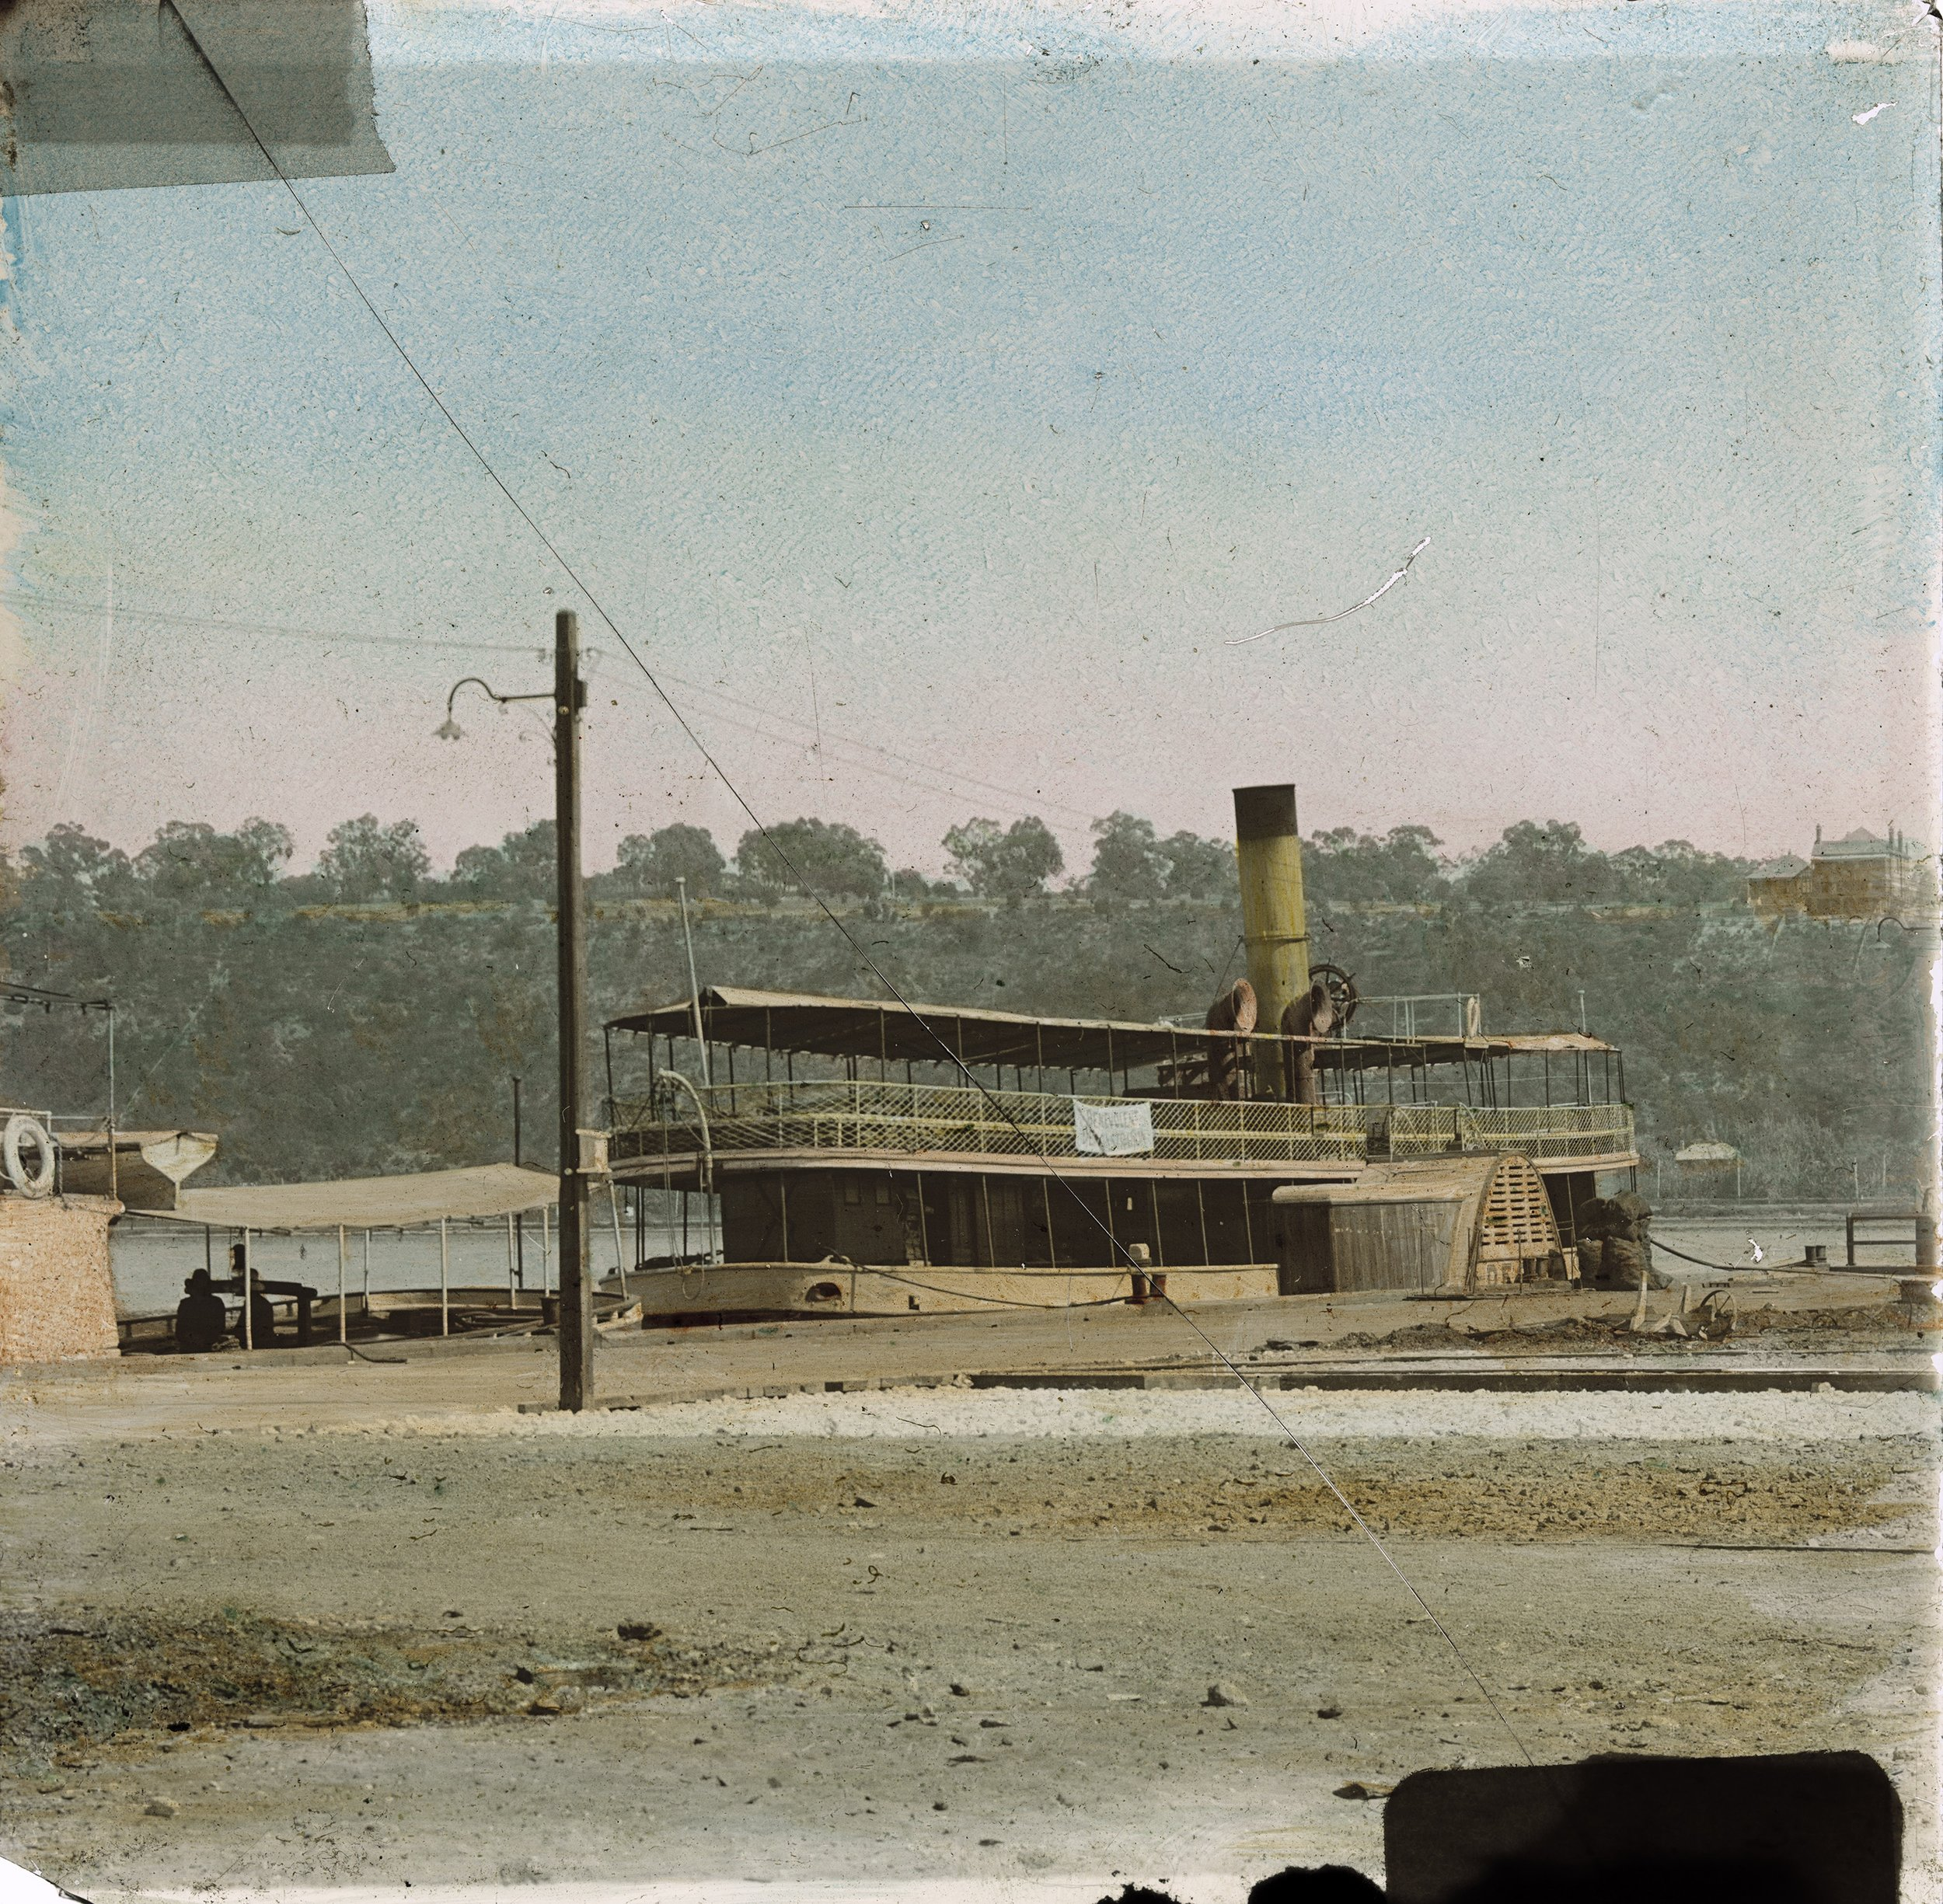 Ferry at the jetty, Kings Park in the background, 1906-1907. Courtesy of the State Library of Western Australia (207327PD)